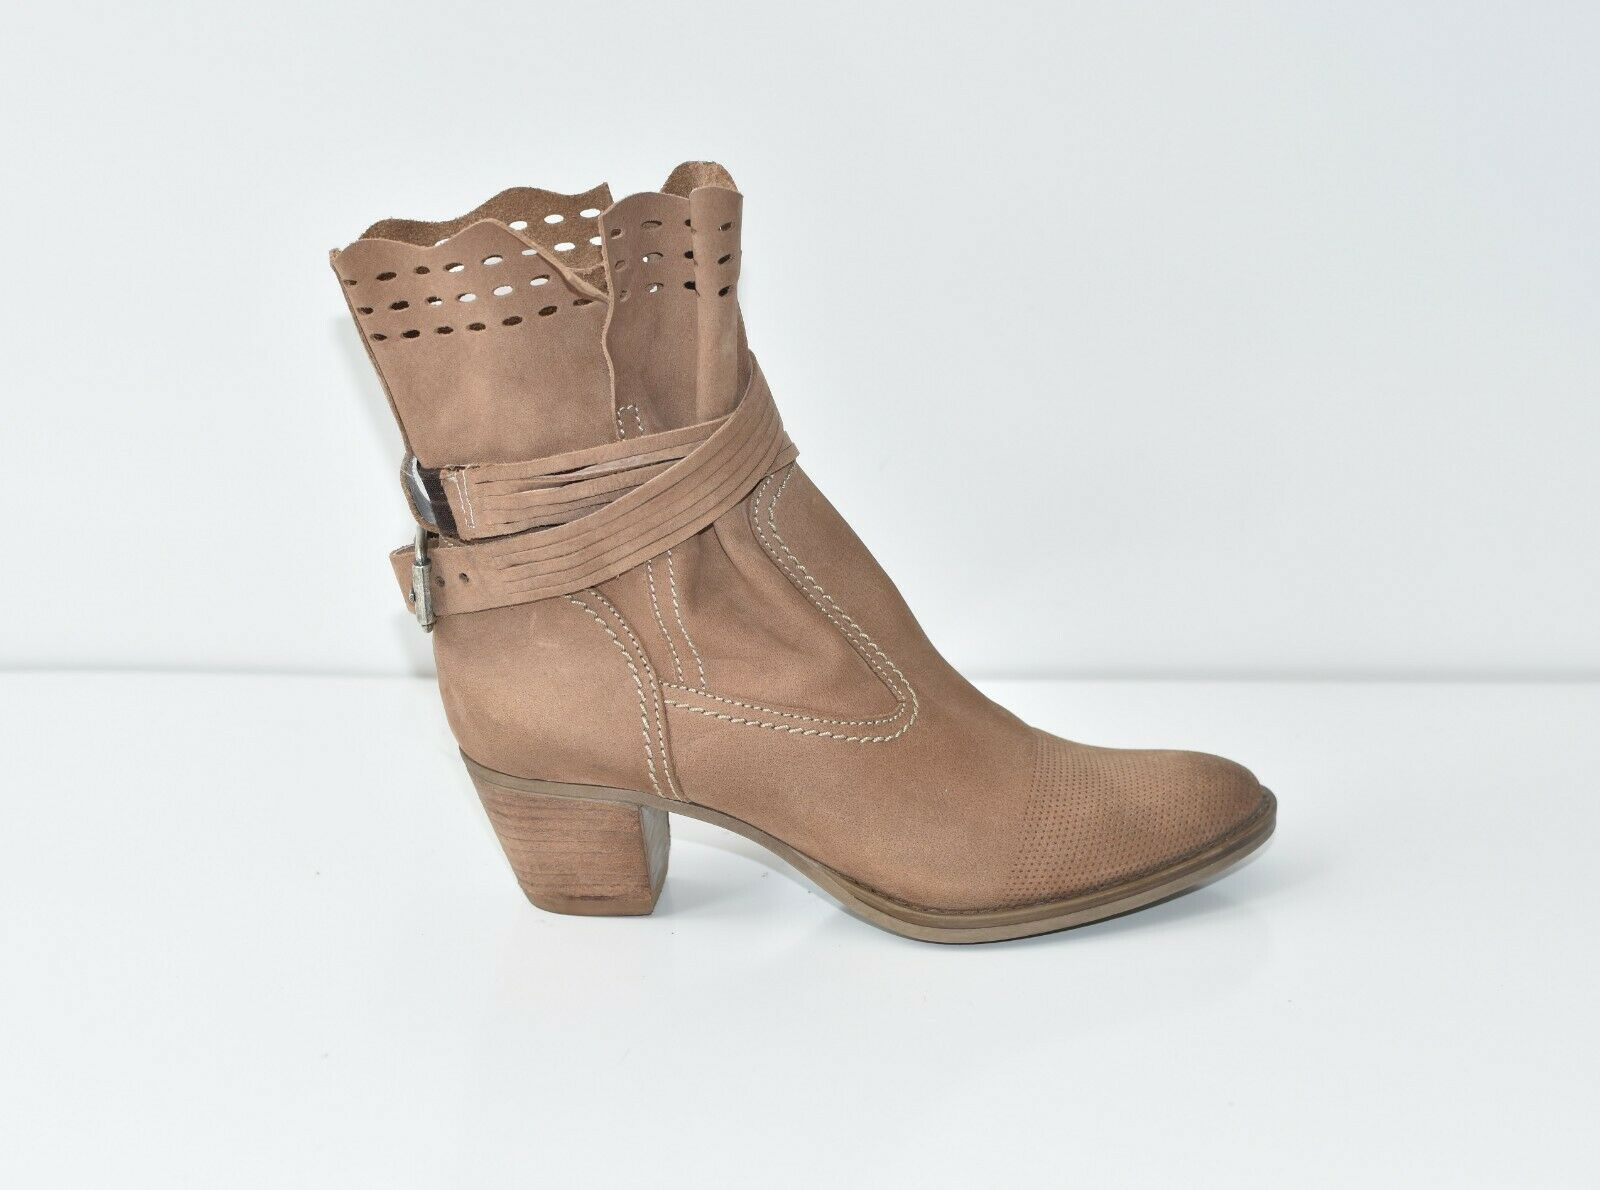 Brown Real Leather TAMARIS Ankle Boots Mid Heel Women's shoes Booties Size UK4